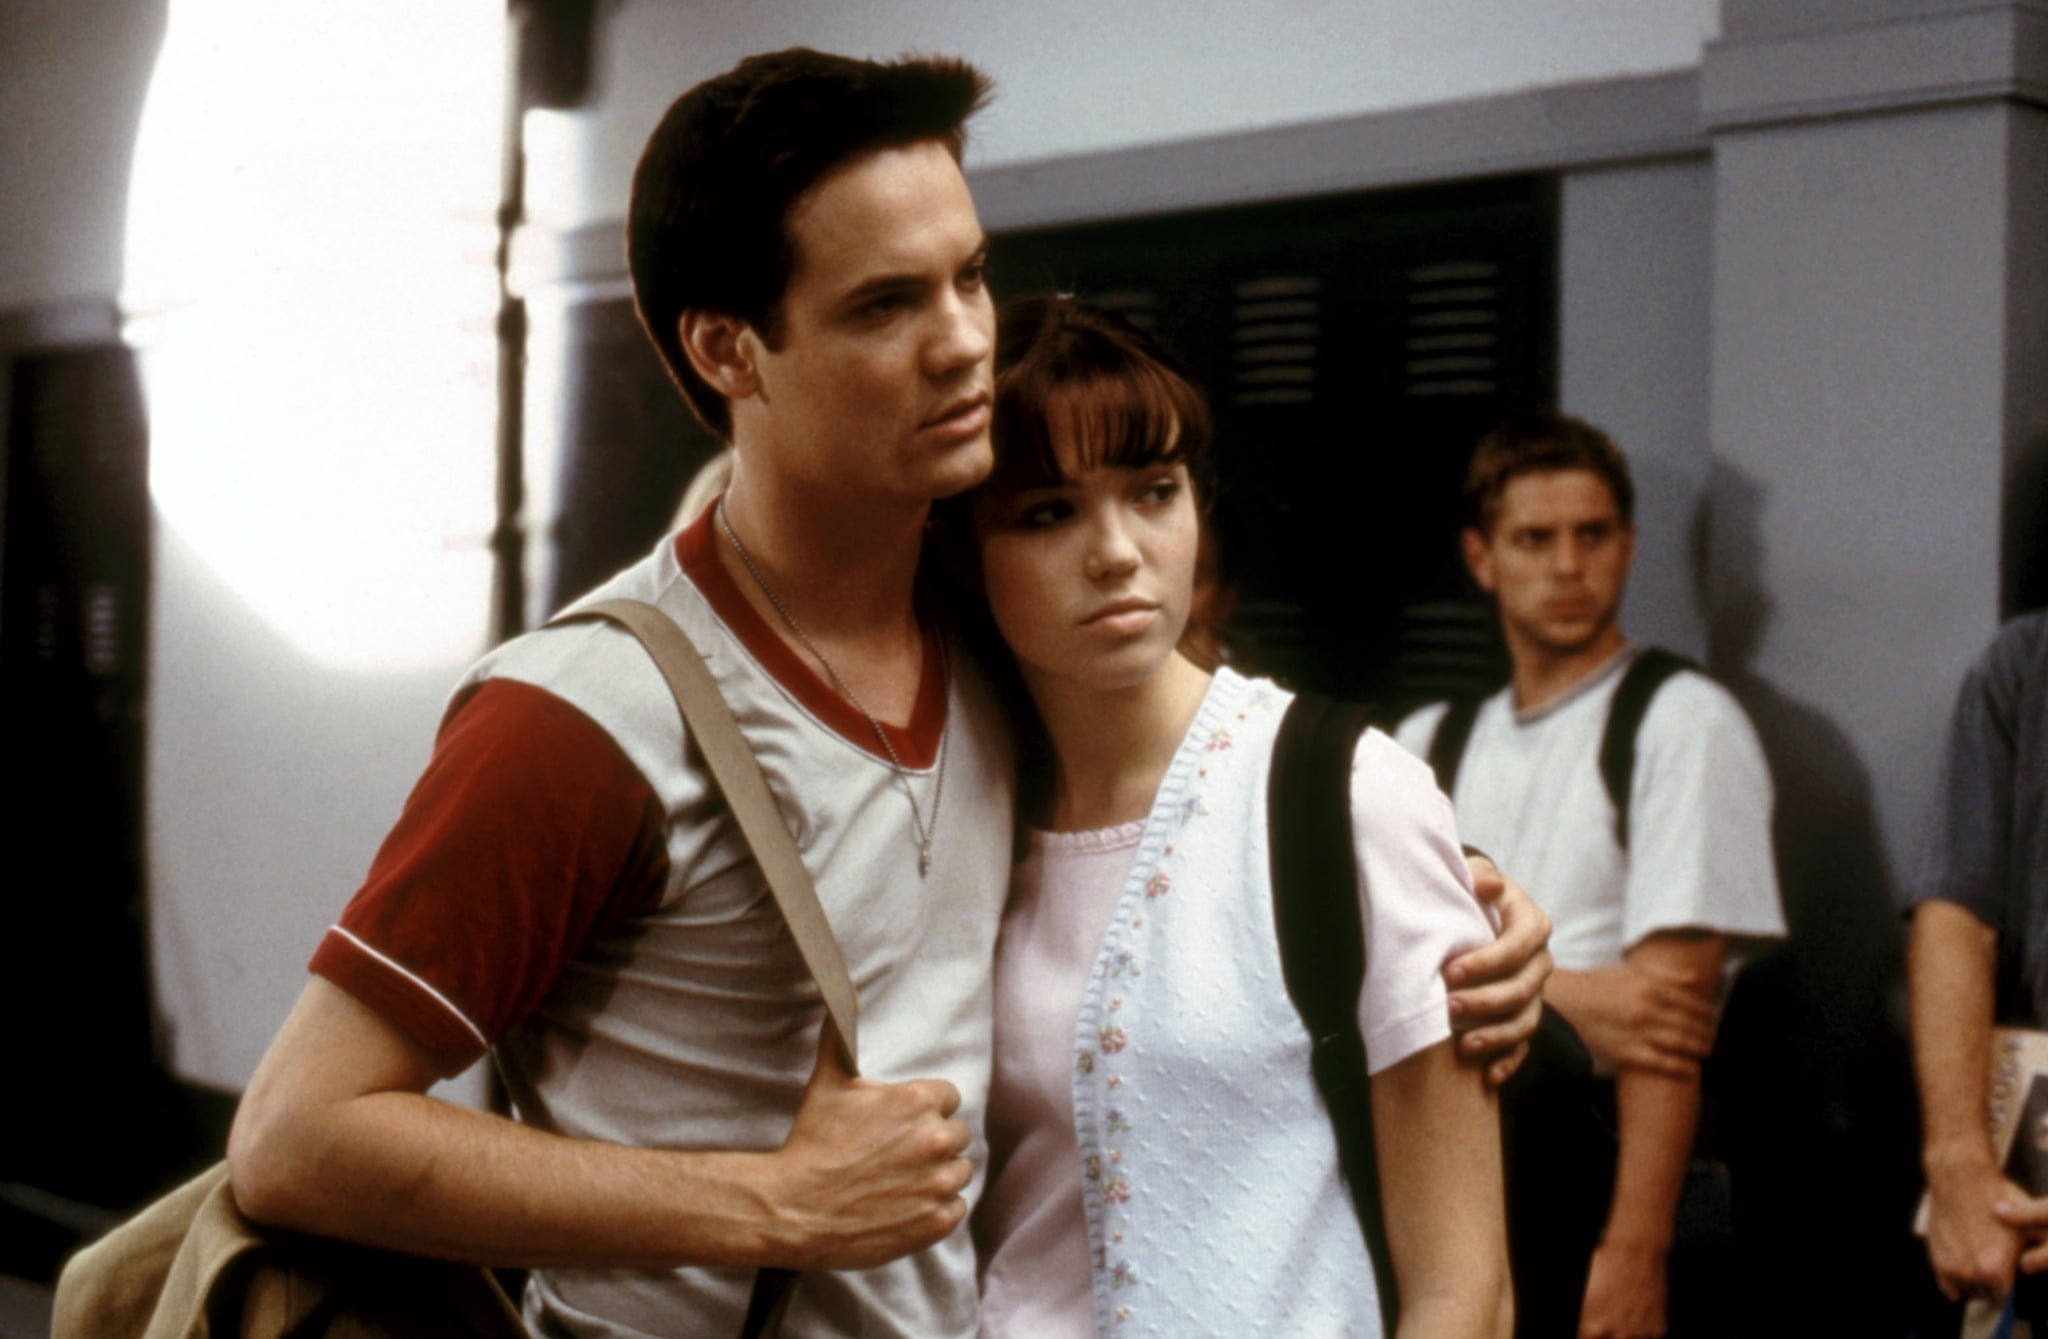 mandy moore and shane west are they dating Mandy moore and shane west had a one of the key parts of the movie is jamie and landon sharing the things they mandy, if i say one of shane's lines do.